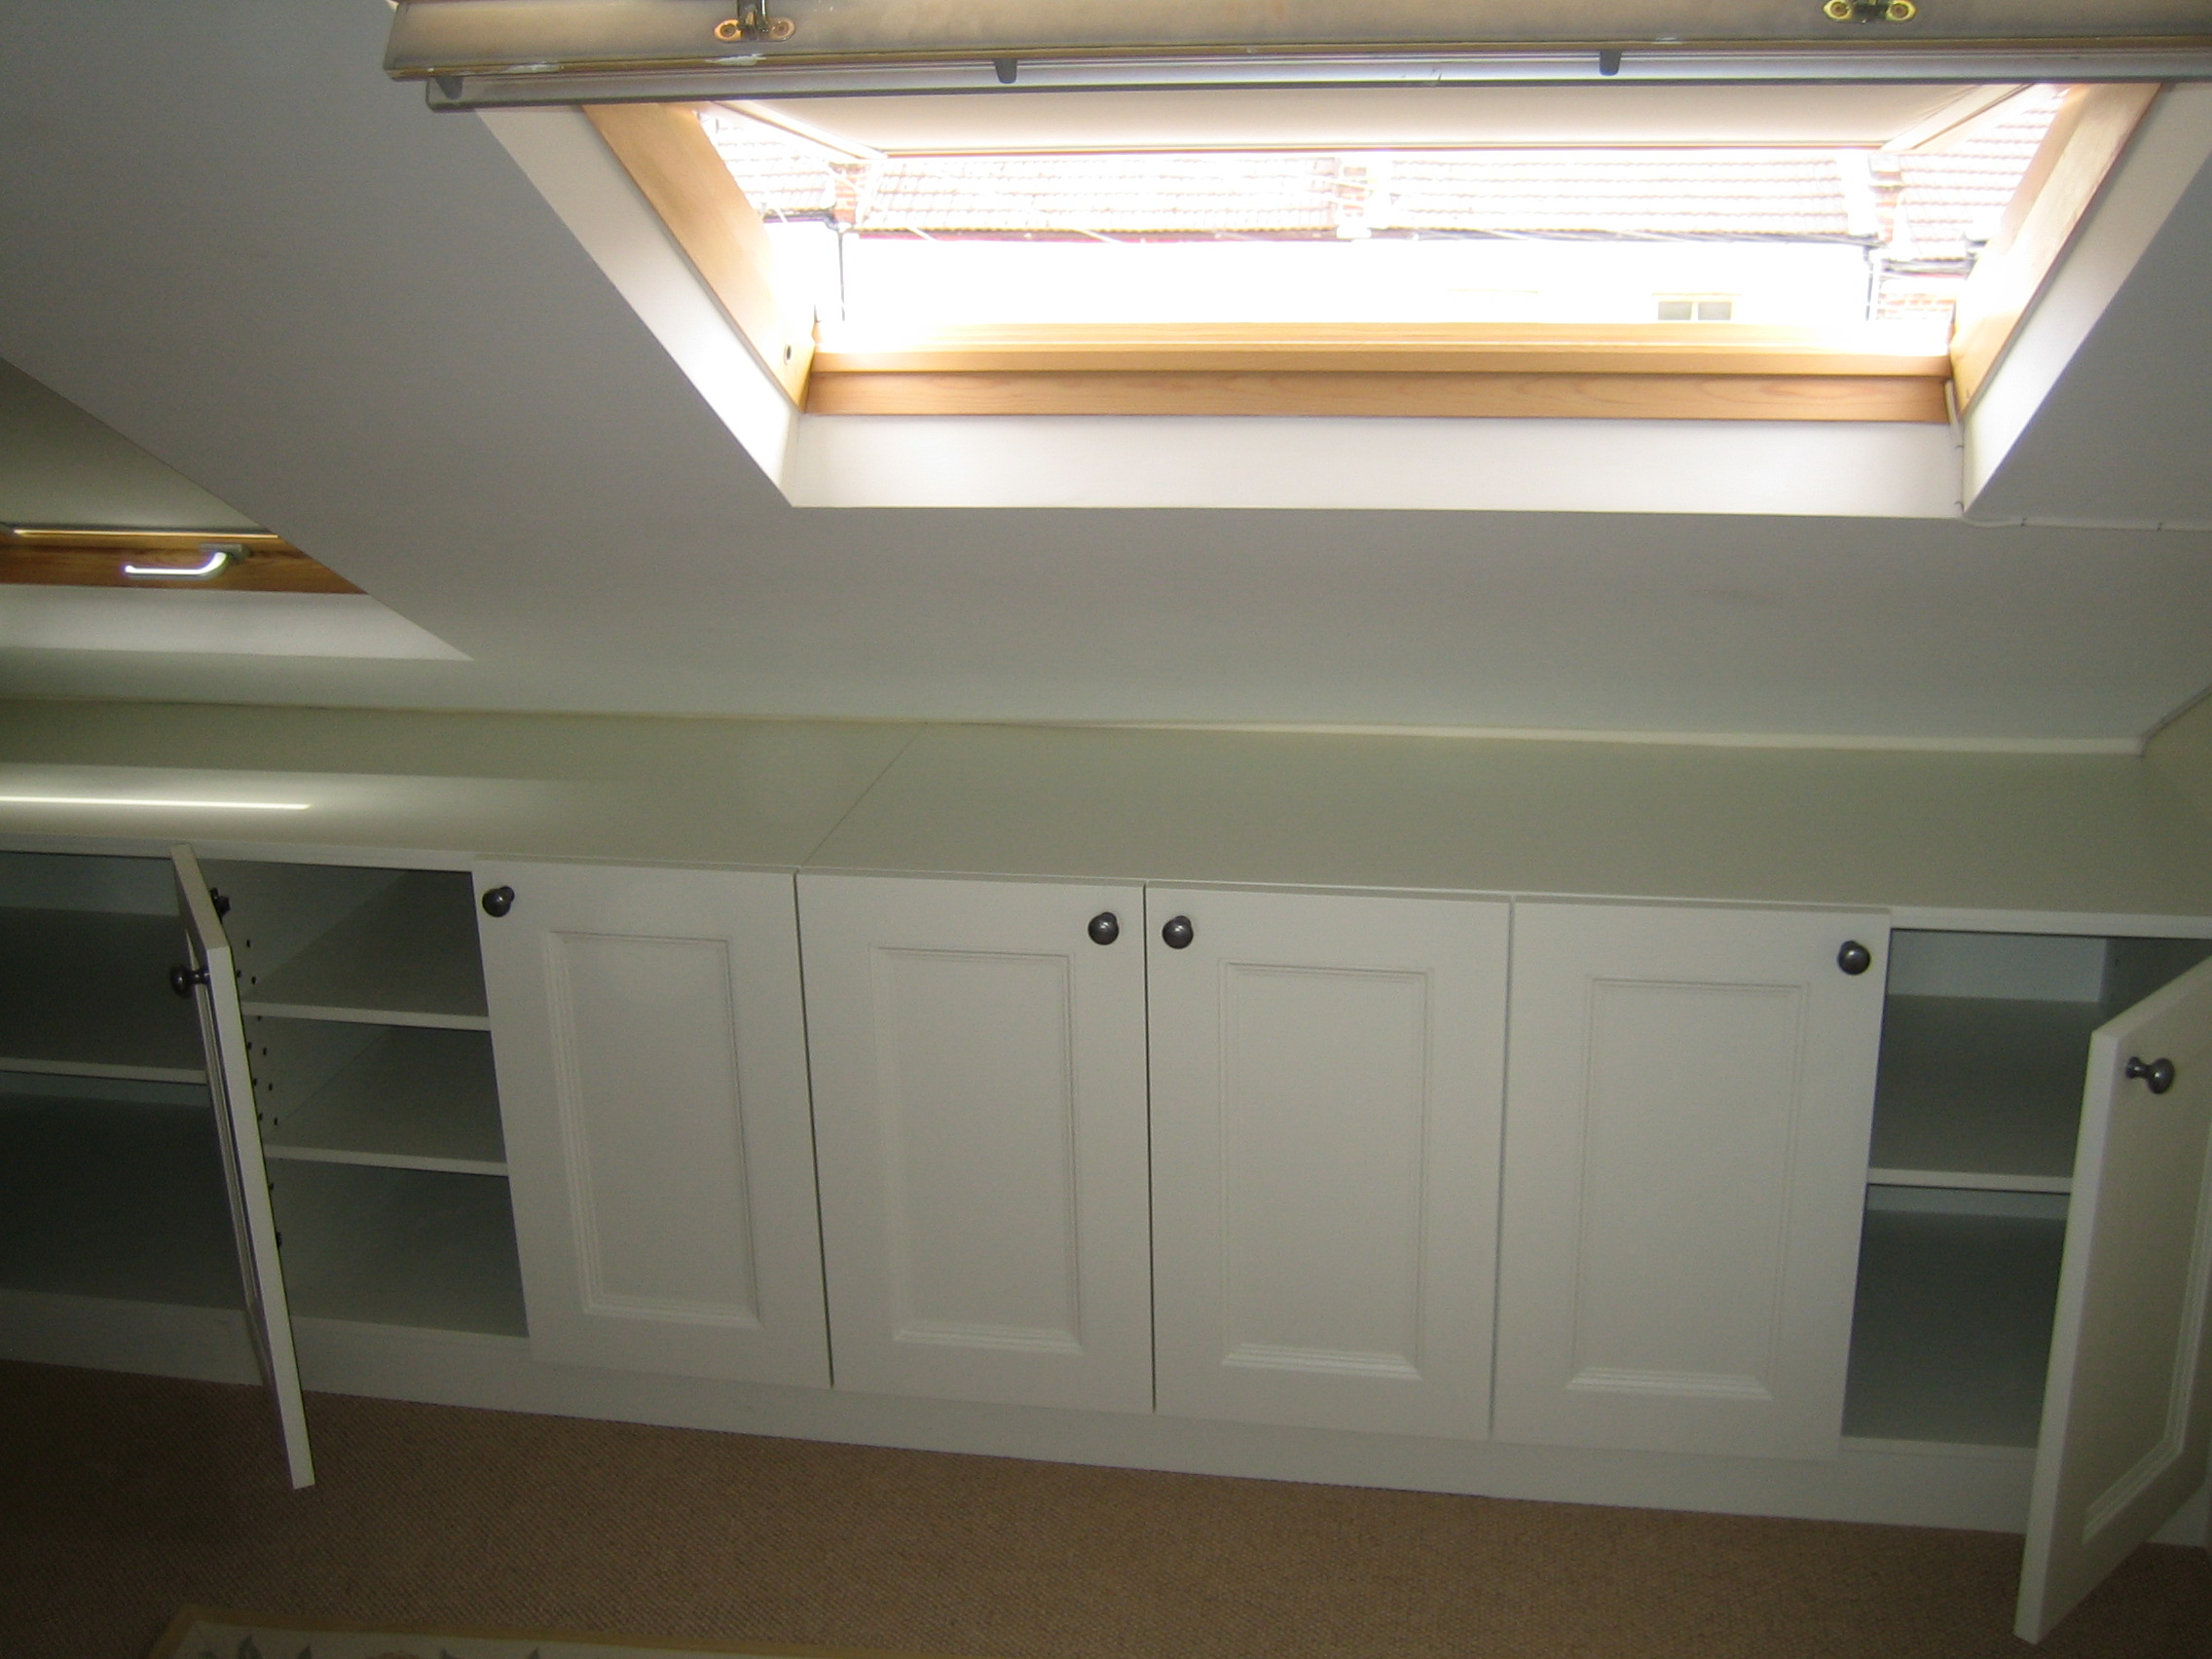 Loft Room Furniture traditional storage unit in loft room - london  carpentry solutions